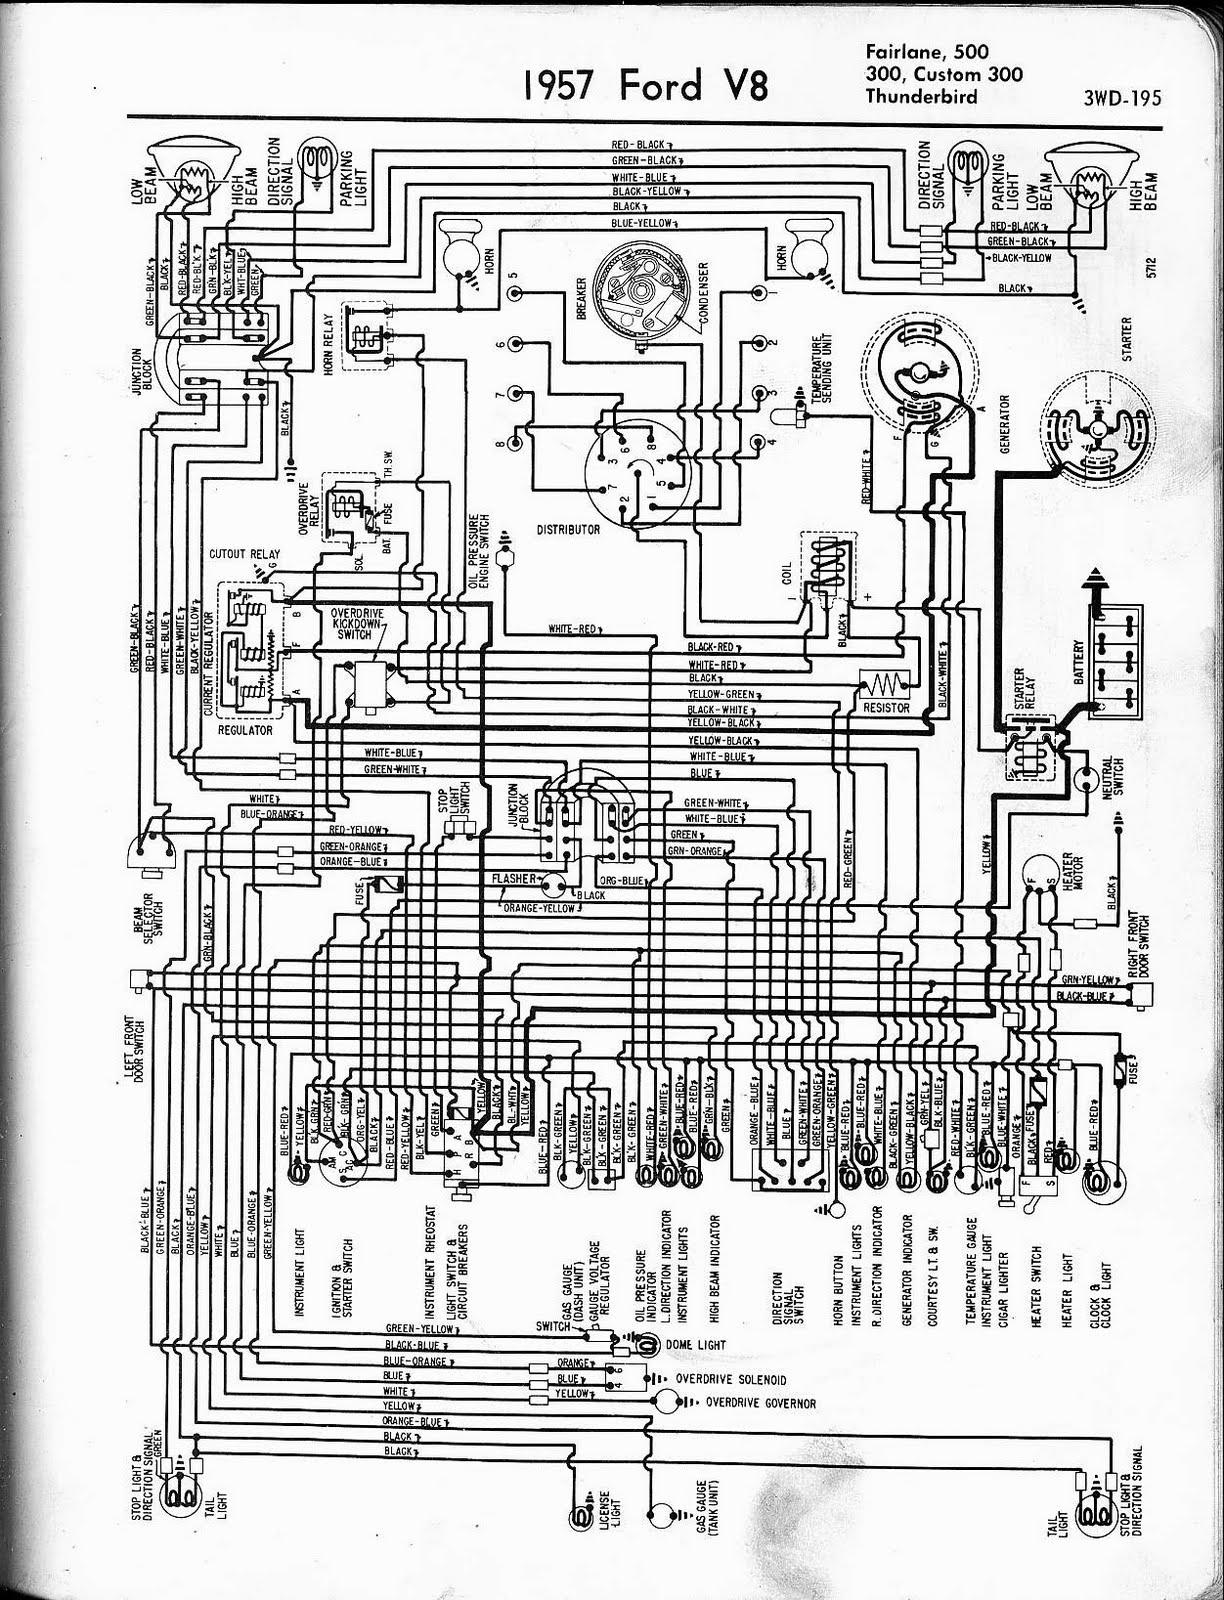 hight resolution of free auto wiring diagram 1957 ford v8 fairlane custom300 1947 plymouth wiring harness plymouth duster wiring